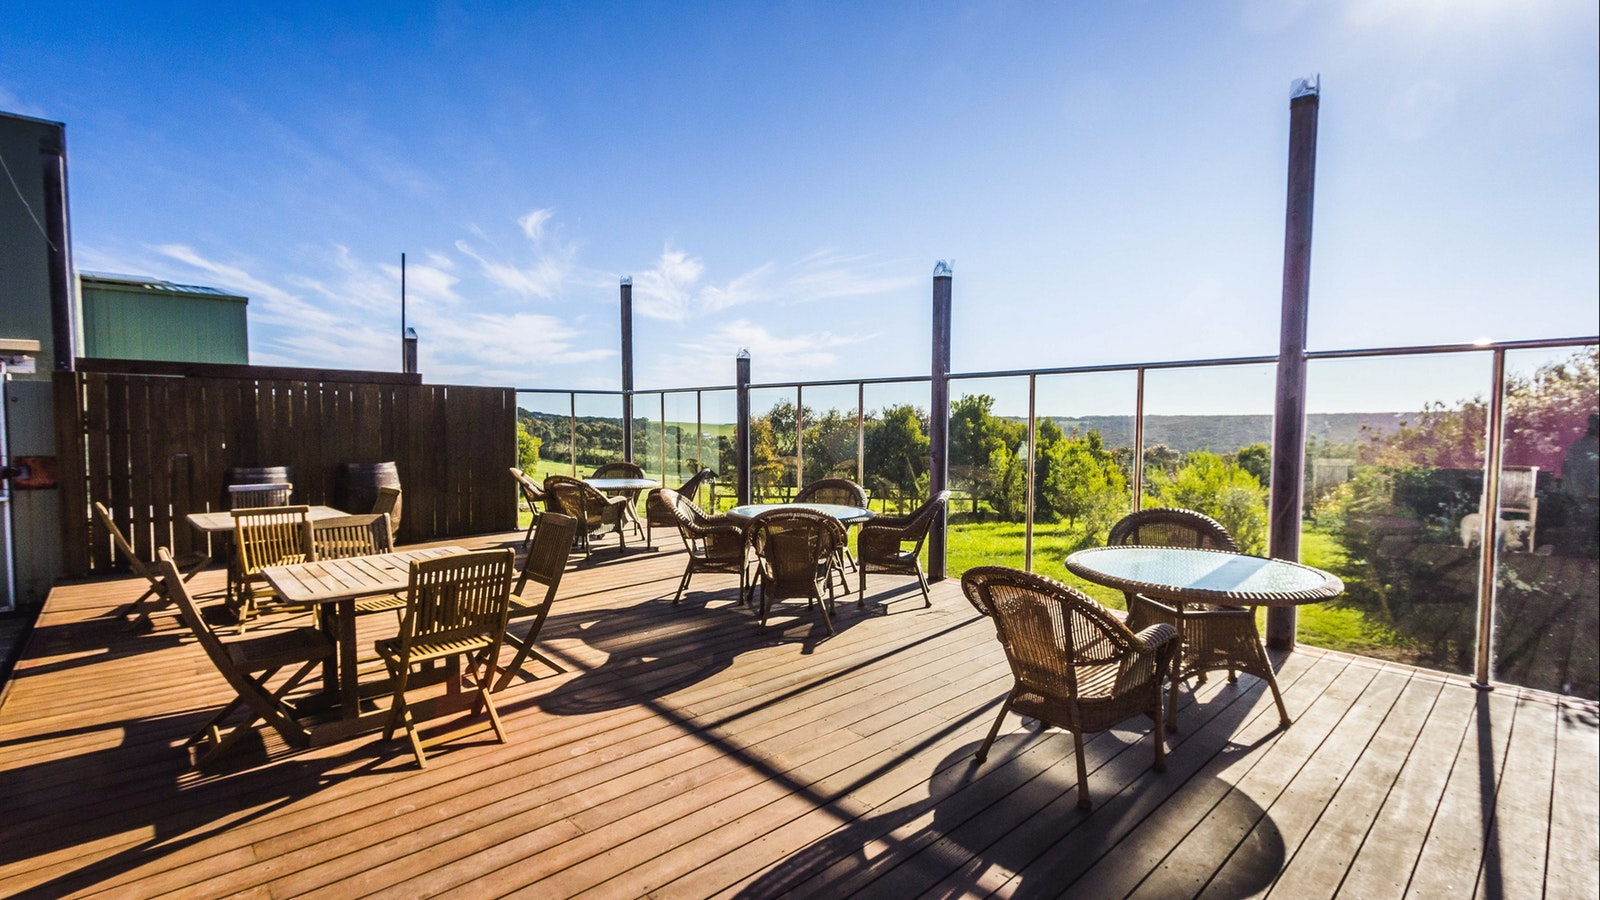 Outdoor dining deck at Nazaaray Estate Winery